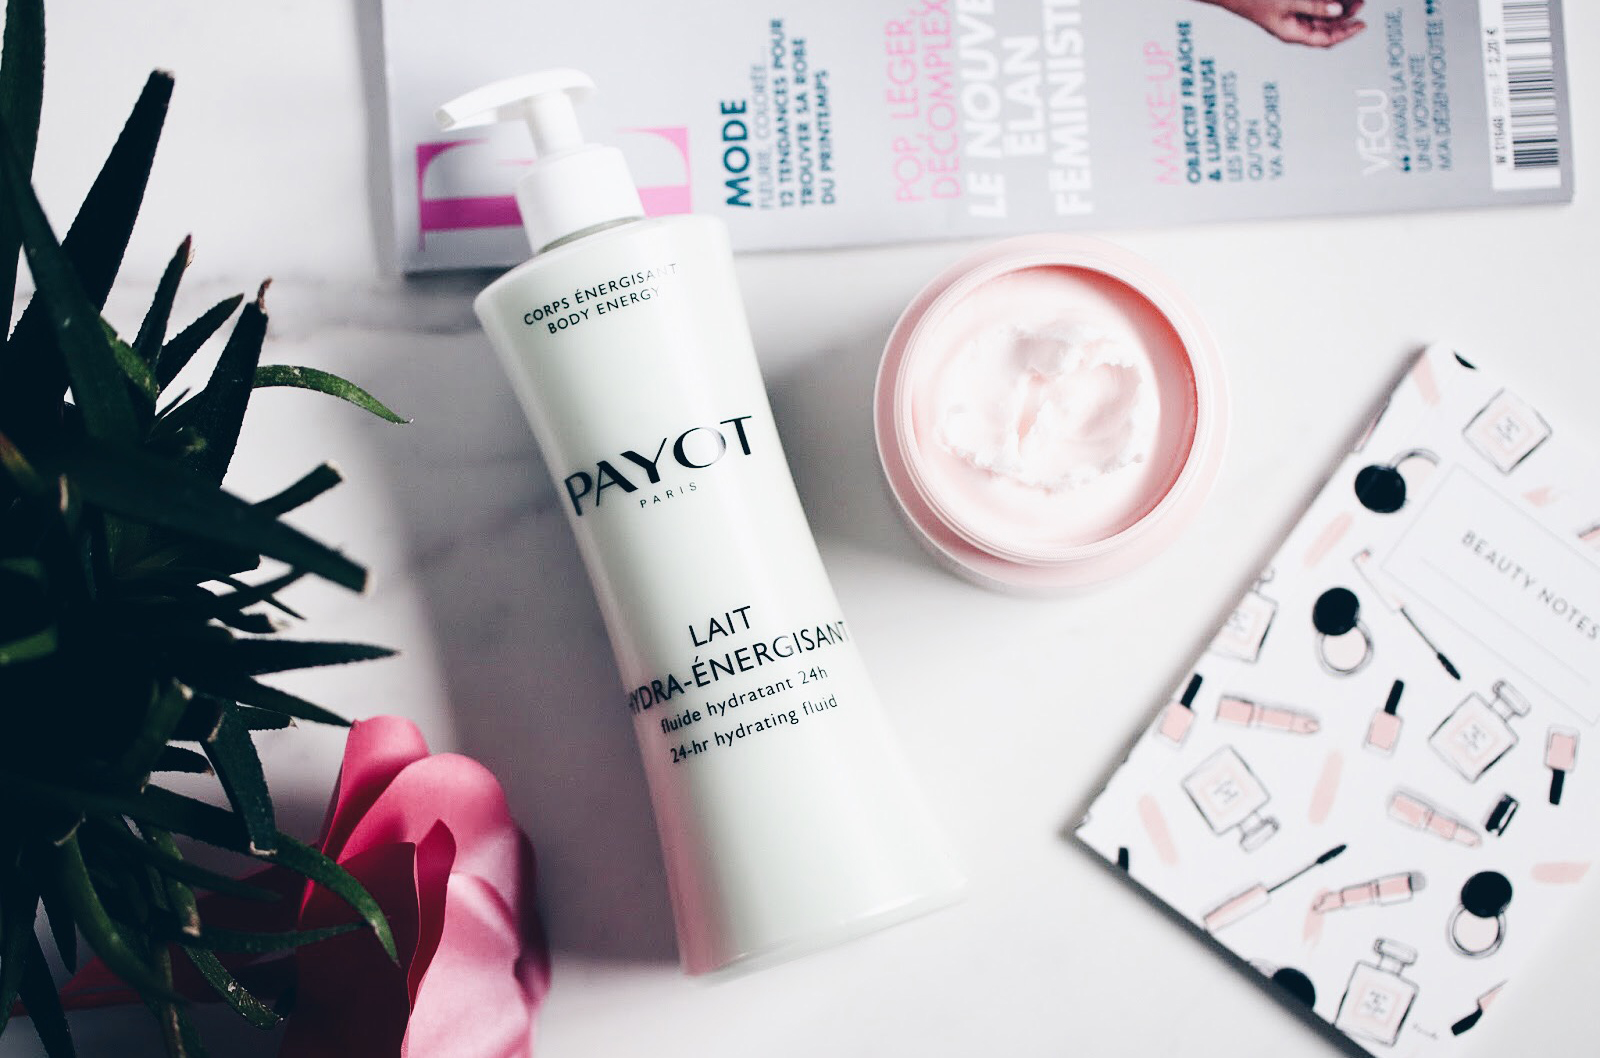 payot soins corps lait hydra energisant baume nutri relaxant avis test